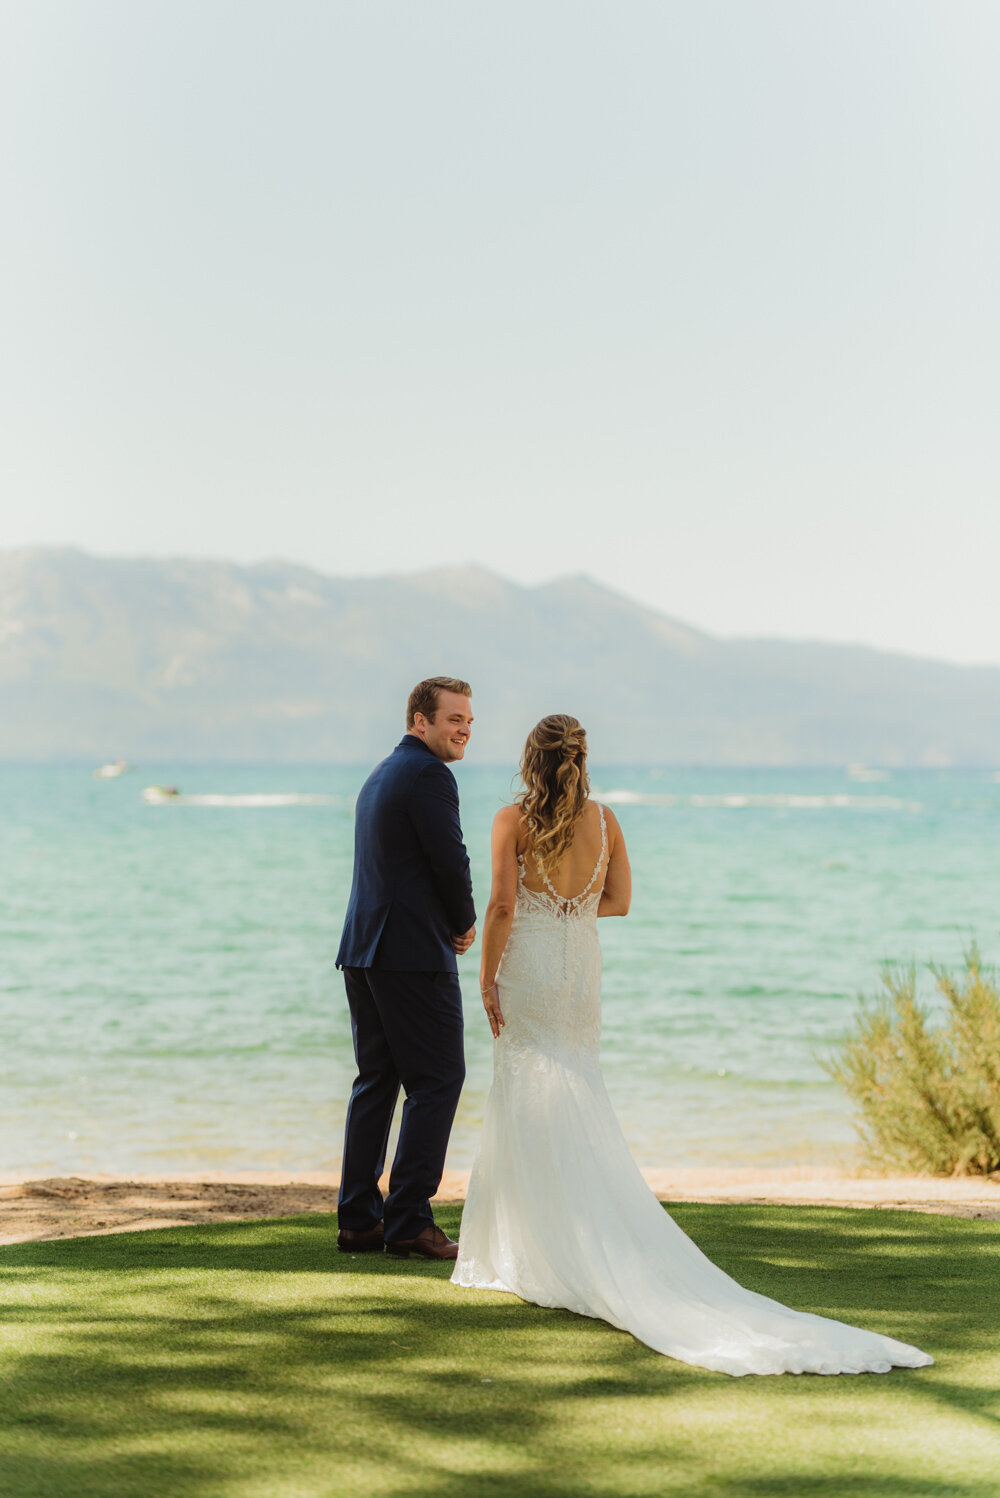 Edgewood Tahoe Wedding, photo of groom seeing his bride